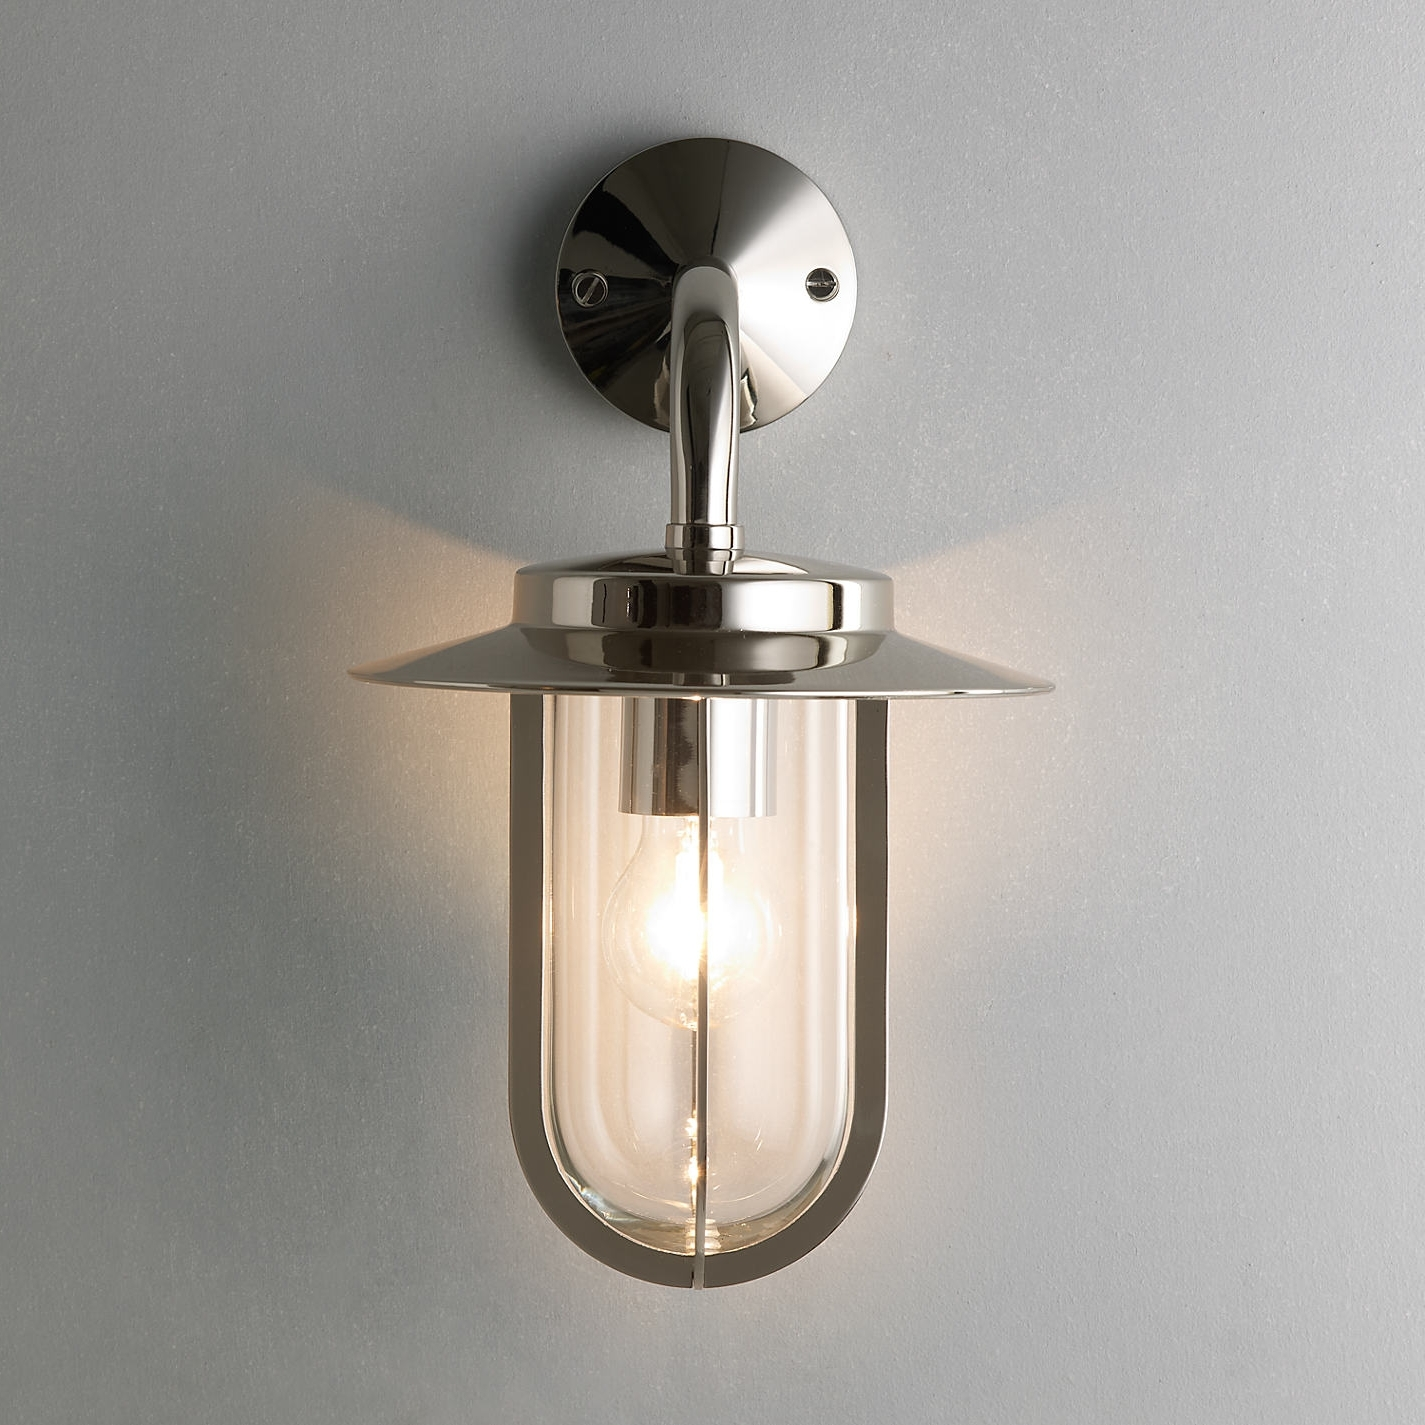 Preferred Outdoor Wall Hung Lights Intended For Wall Mounted Outdoor Lamps – Outdoor Designs (View 16 of 20)